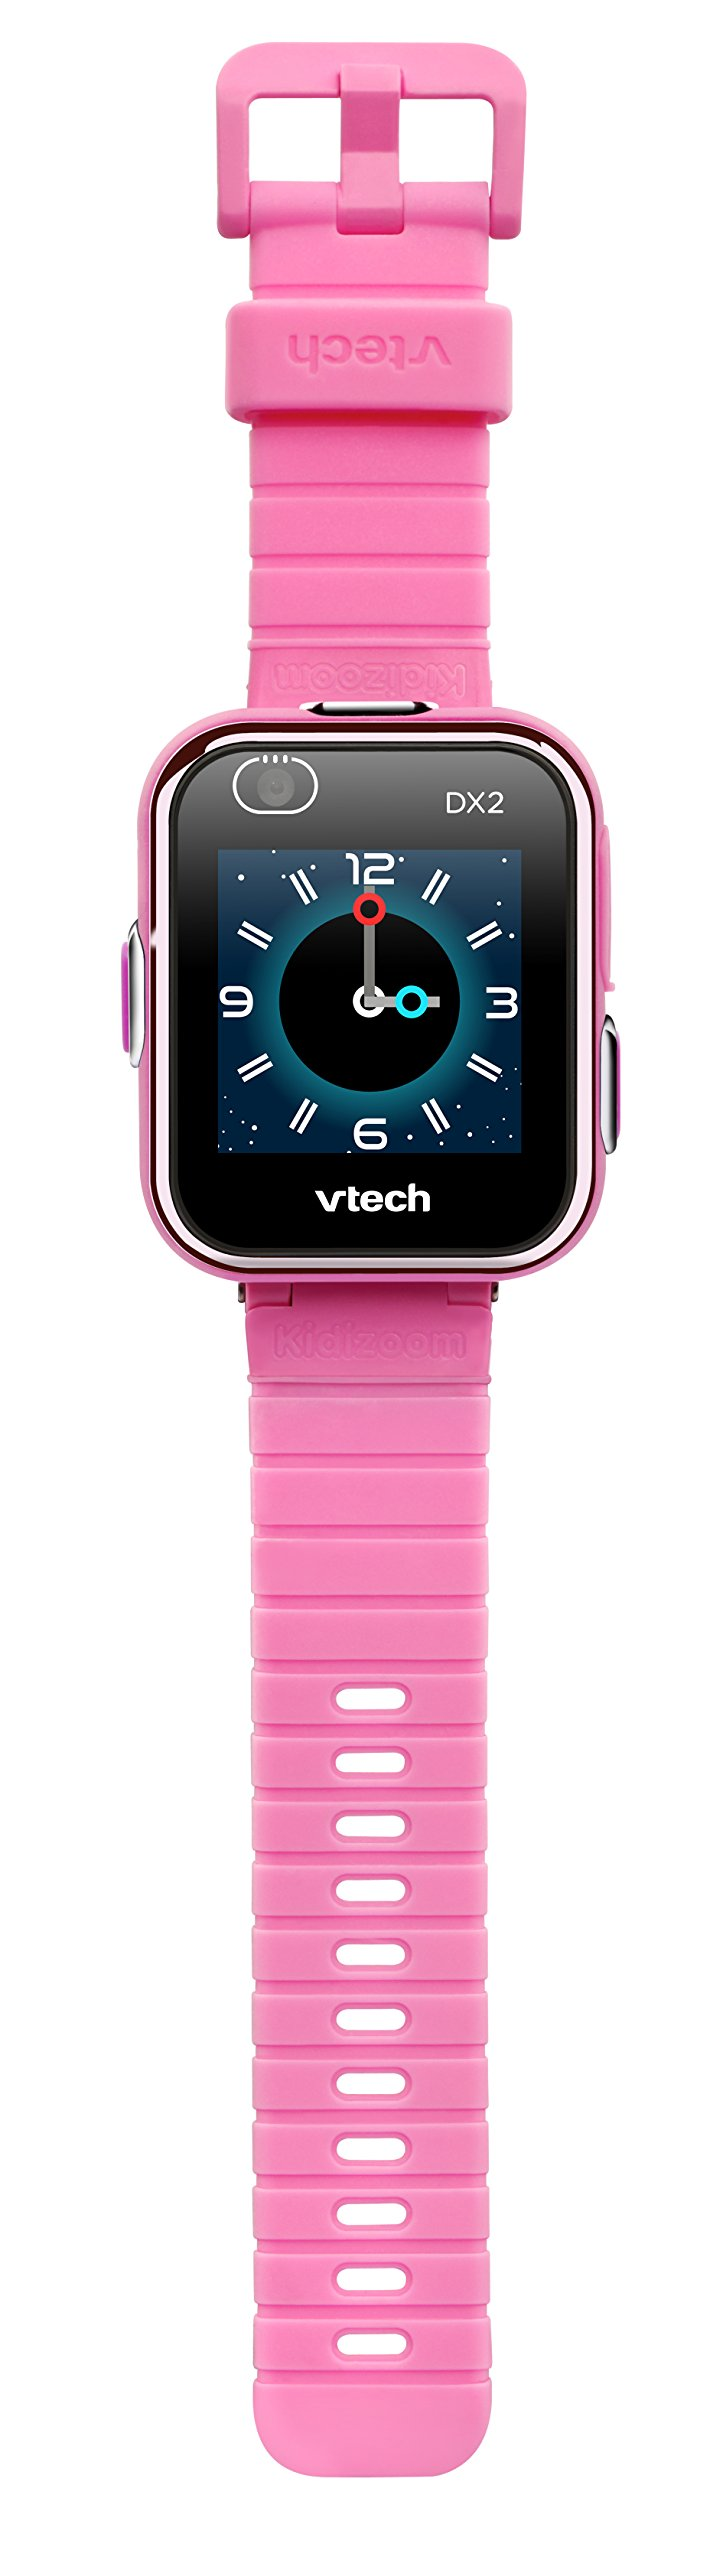 VTech Kidizoom Smart Watch DX2 - Reloj inteligente para niños, color rosa, versión Alemana (80-193854) 3